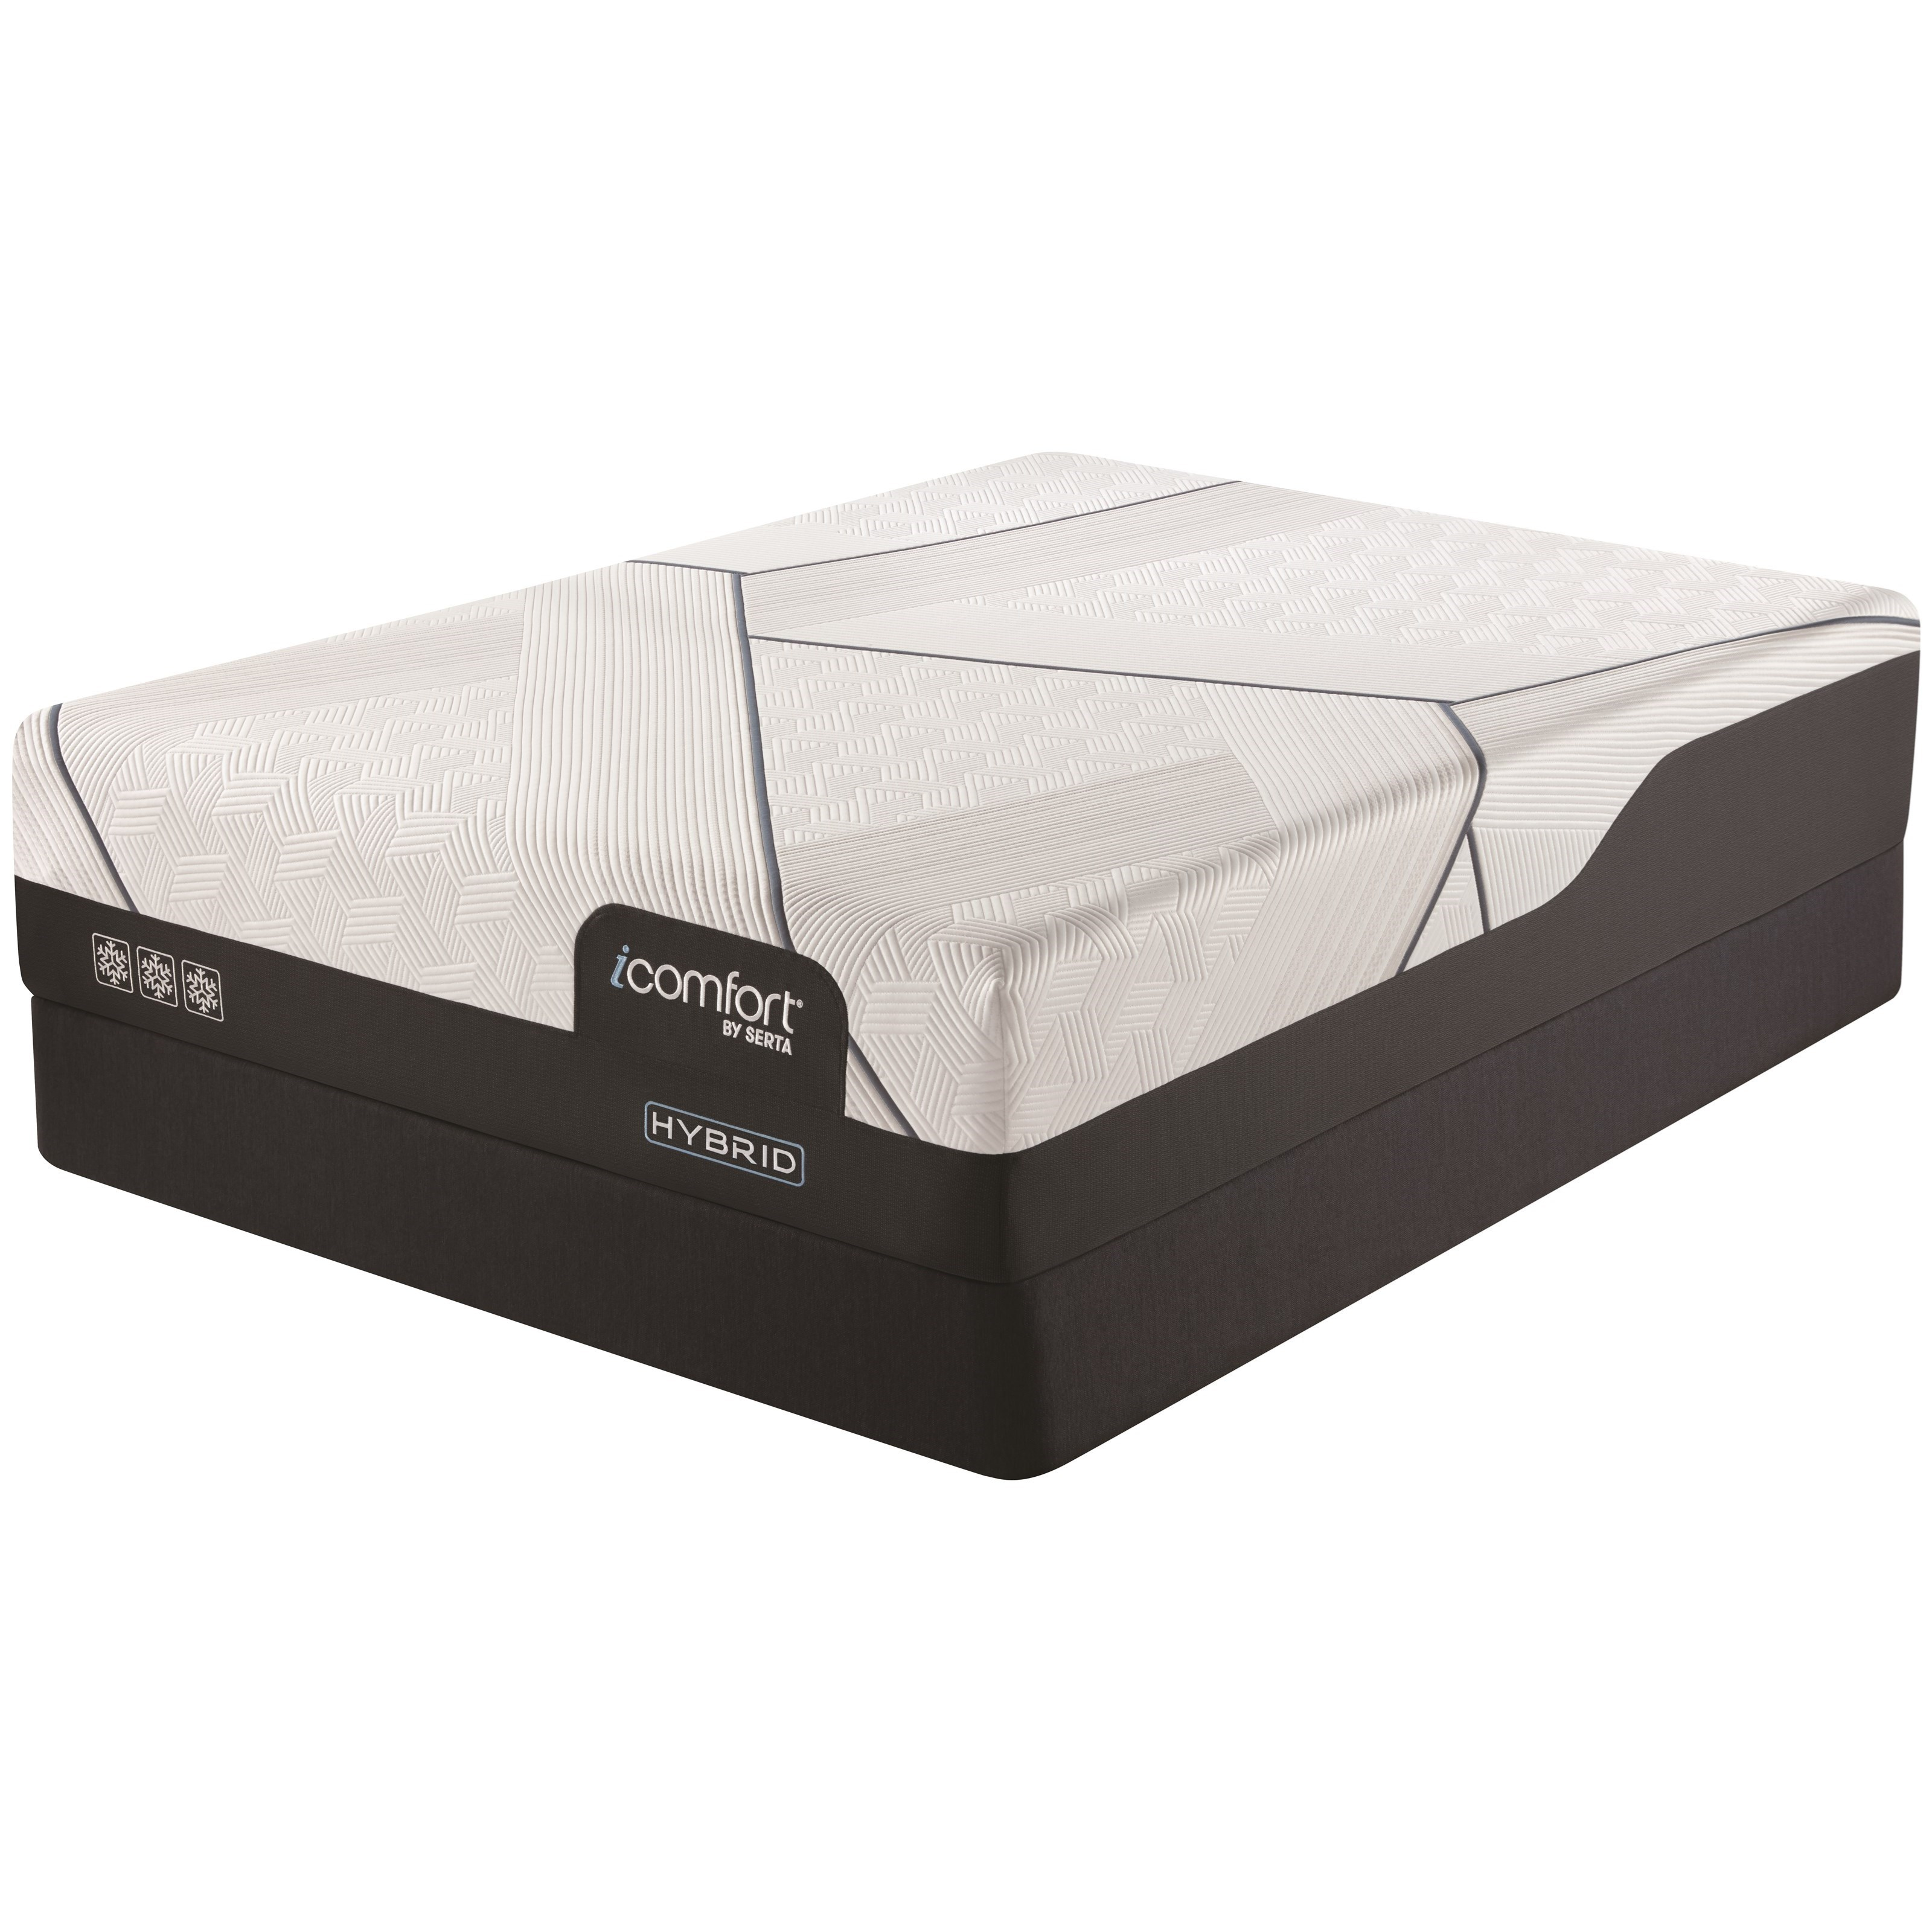 "CF3000 Hybrid Plush Full 13 1/2"" Plush Hybrid Mattress Set by Serta at Darvin Furniture"